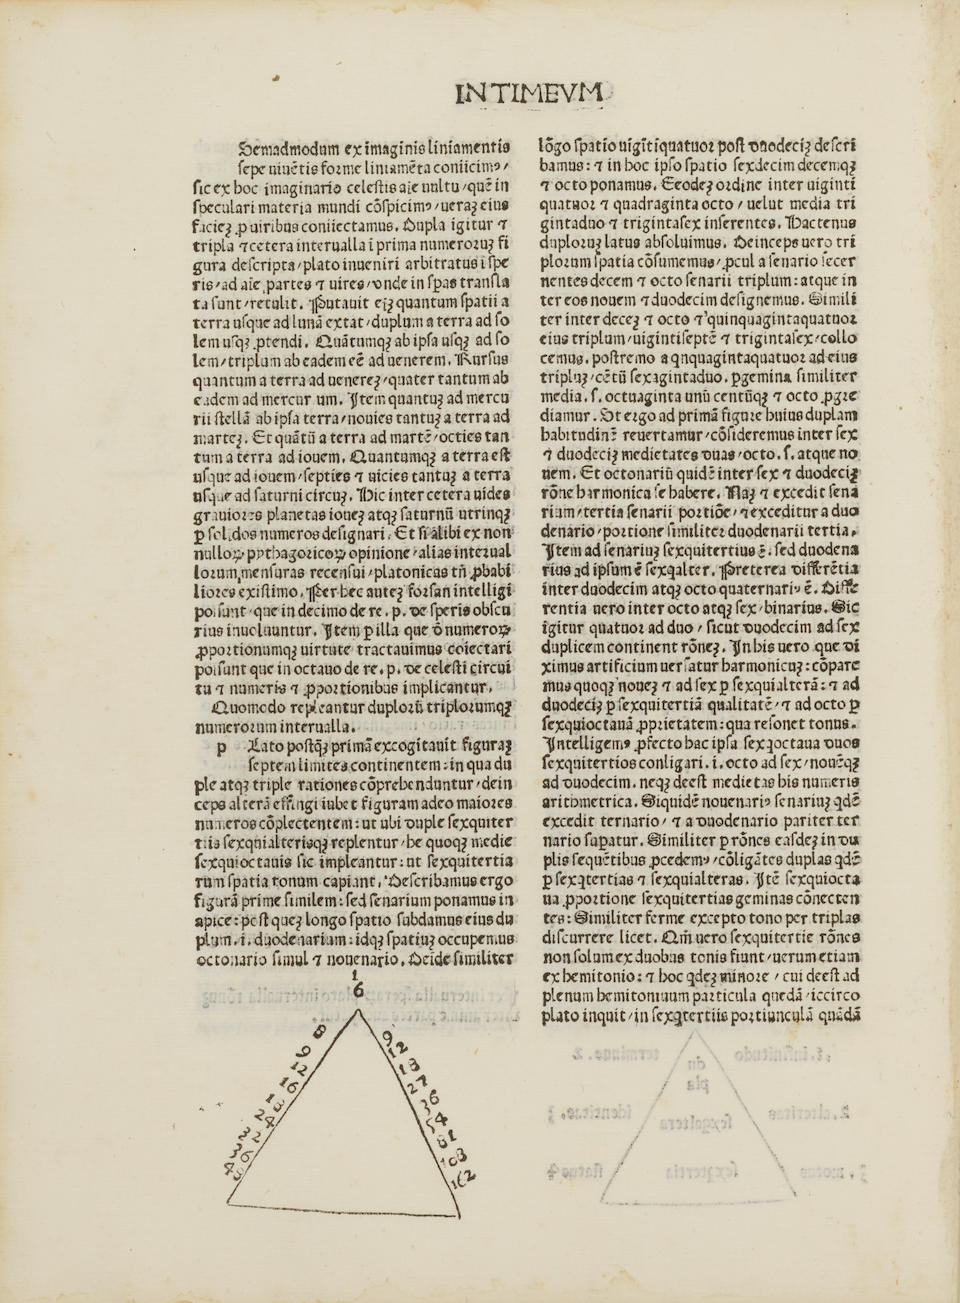 PLATO. 427?-347 B.C. Timaeus [AND] Critias [from Ficini's 1484 Opera]. Marsilius Ficinus, translator and commentary. [Florence: Laurentius (Francisci) de Alopa, Venetus, for Francesco Berlinghieri and Philippus Valor, 1484].